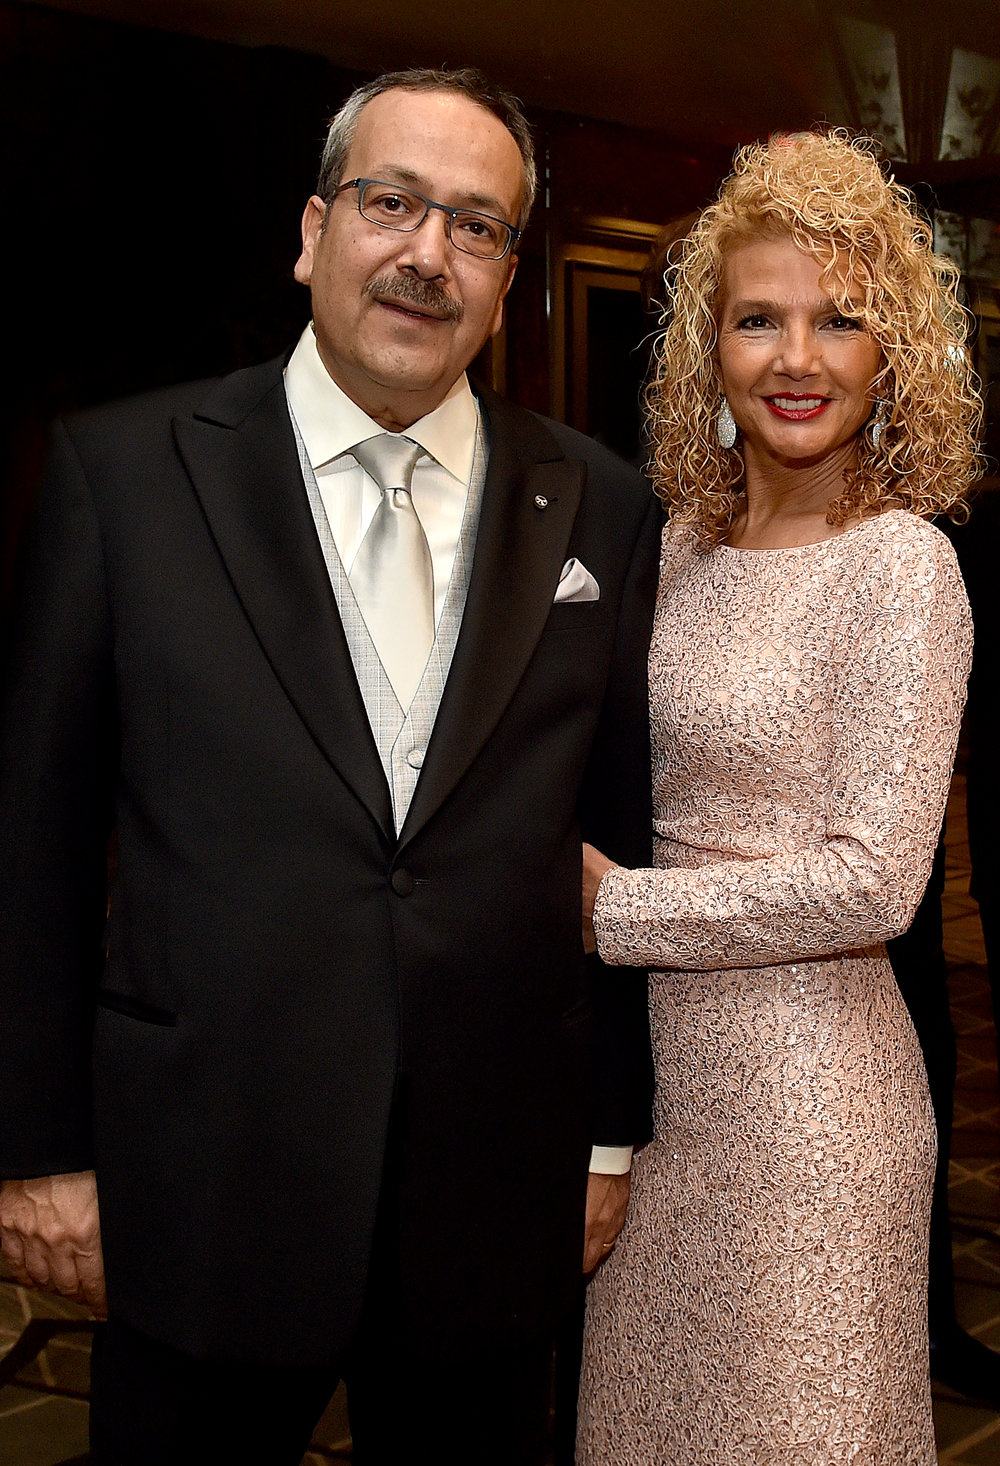 Dr. Spiro Spireas with his wife Dr. Emily Spireas